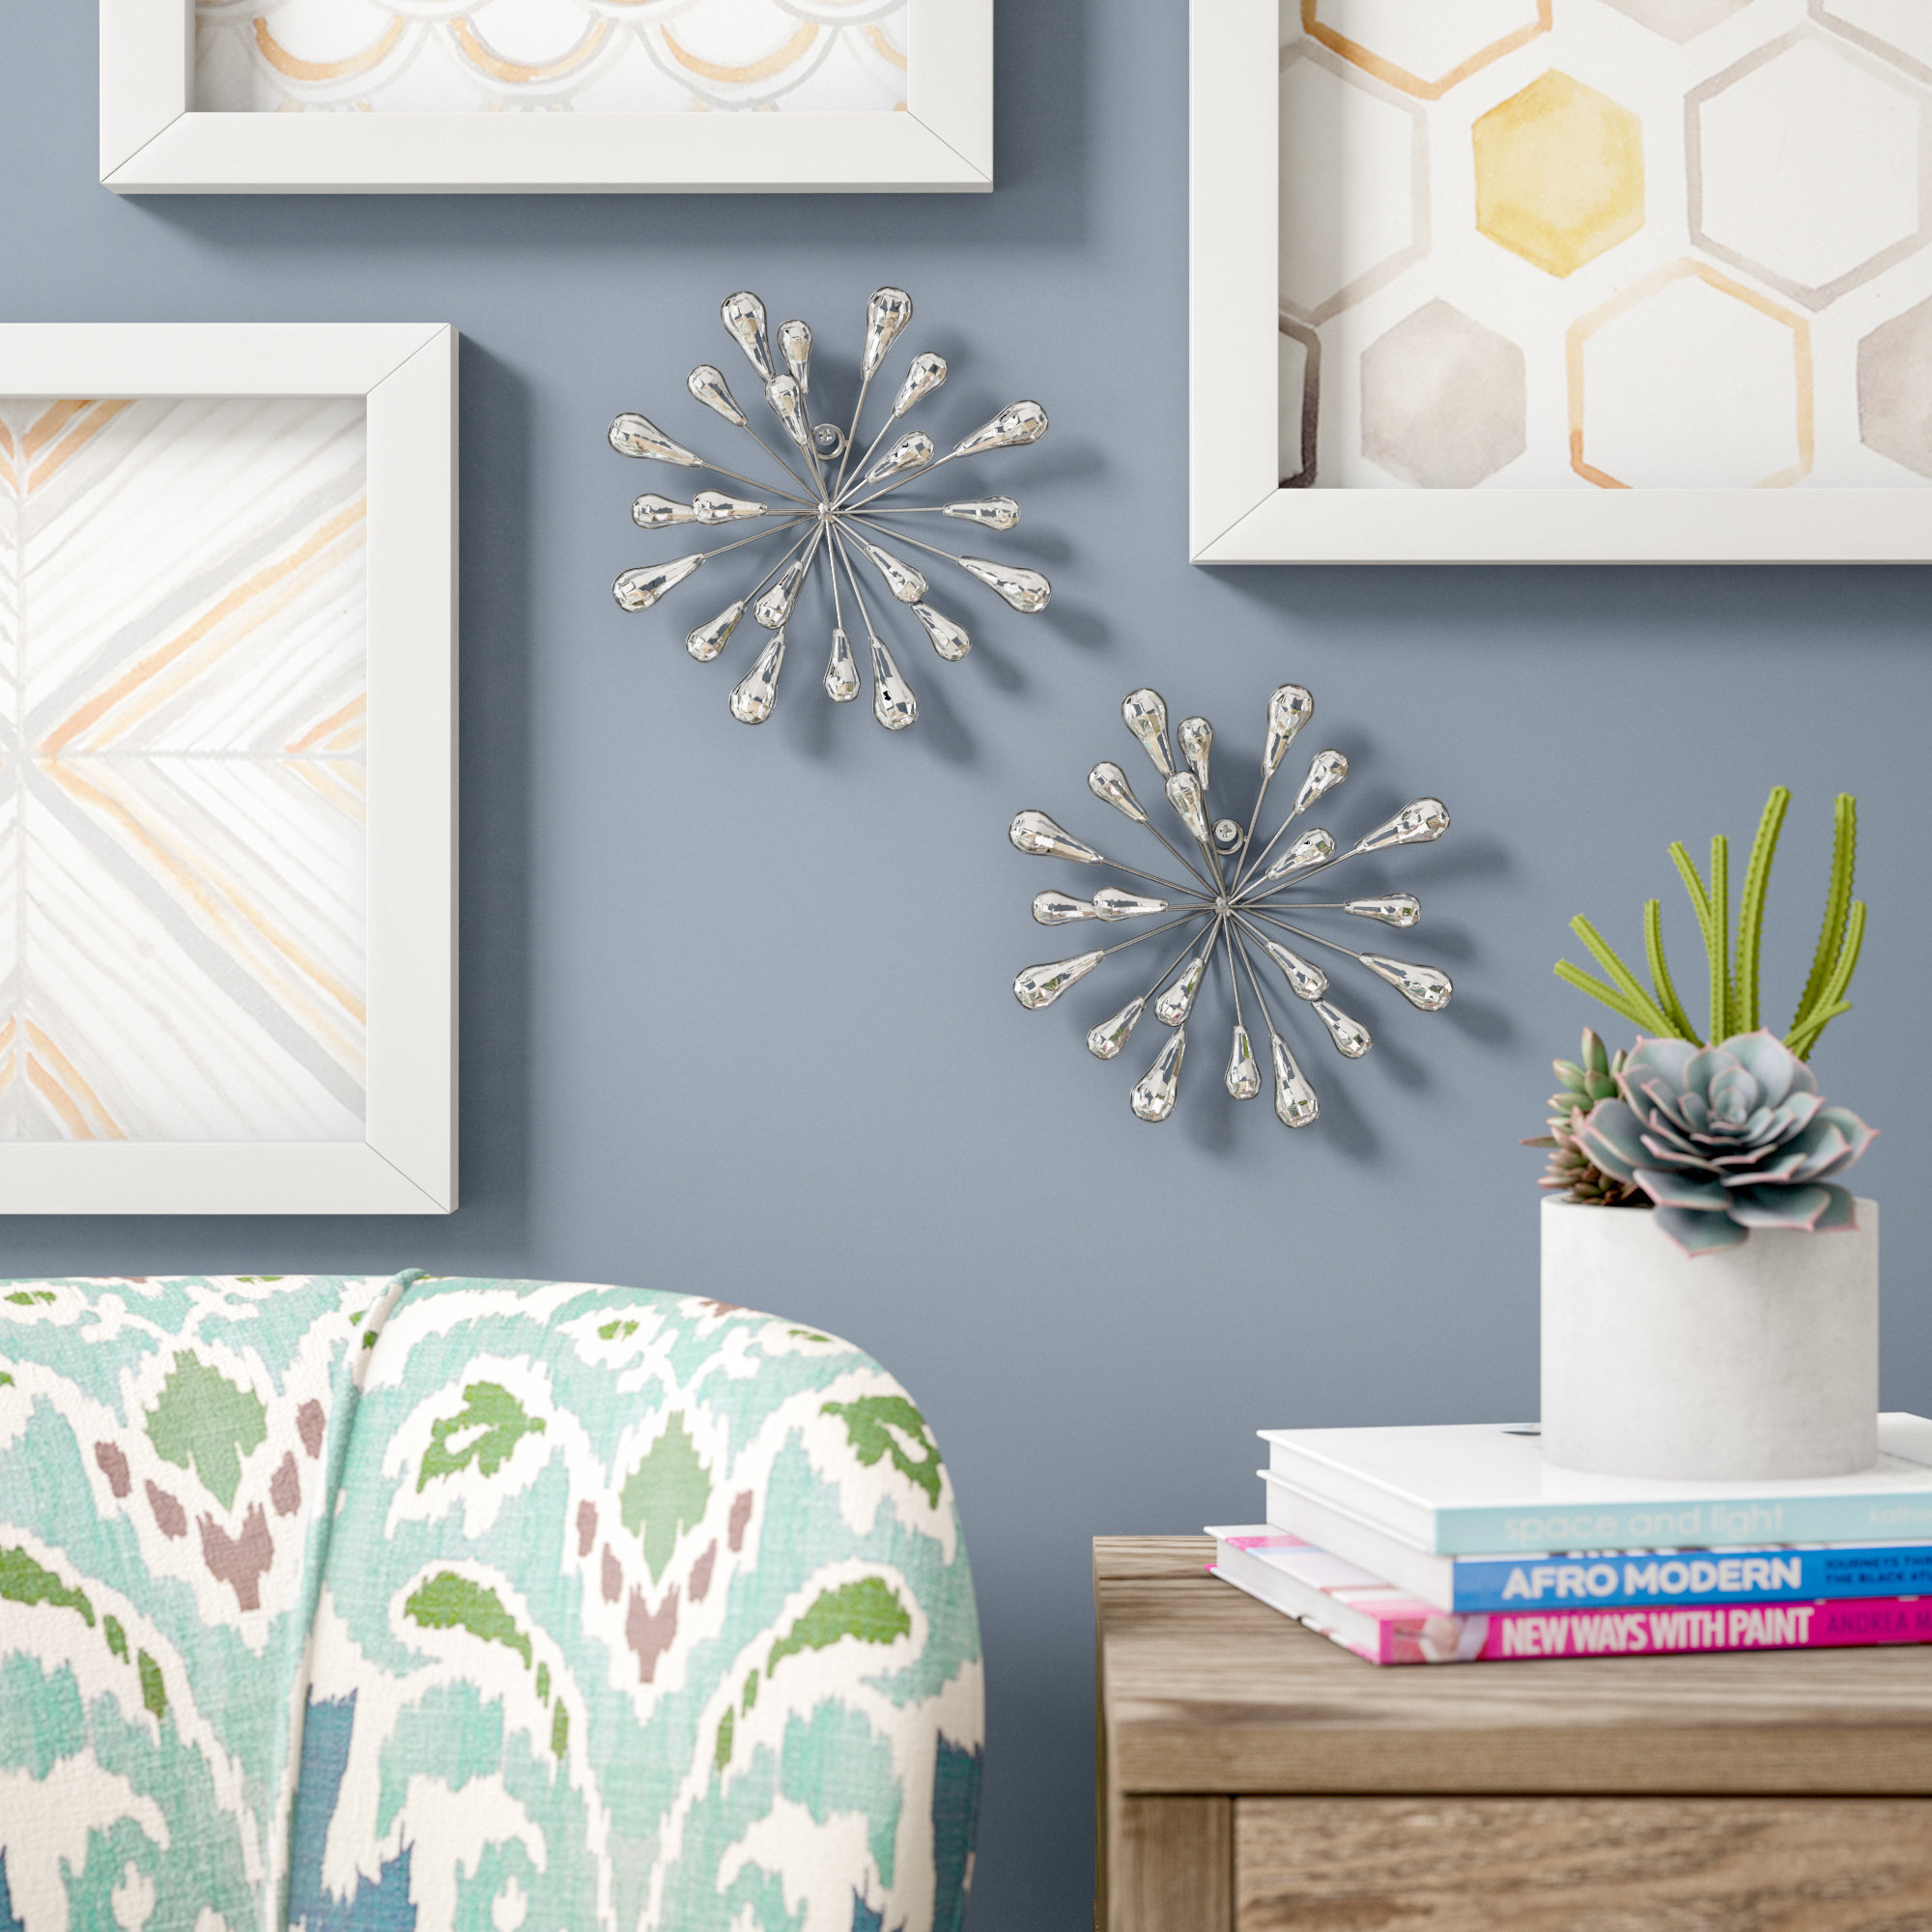 Rings Wall Decor By Wrought Studio Pertaining To Most Current Wrought Studio 2 Piece Starburst Wall Décor Set & Reviews (View 11 of 20)